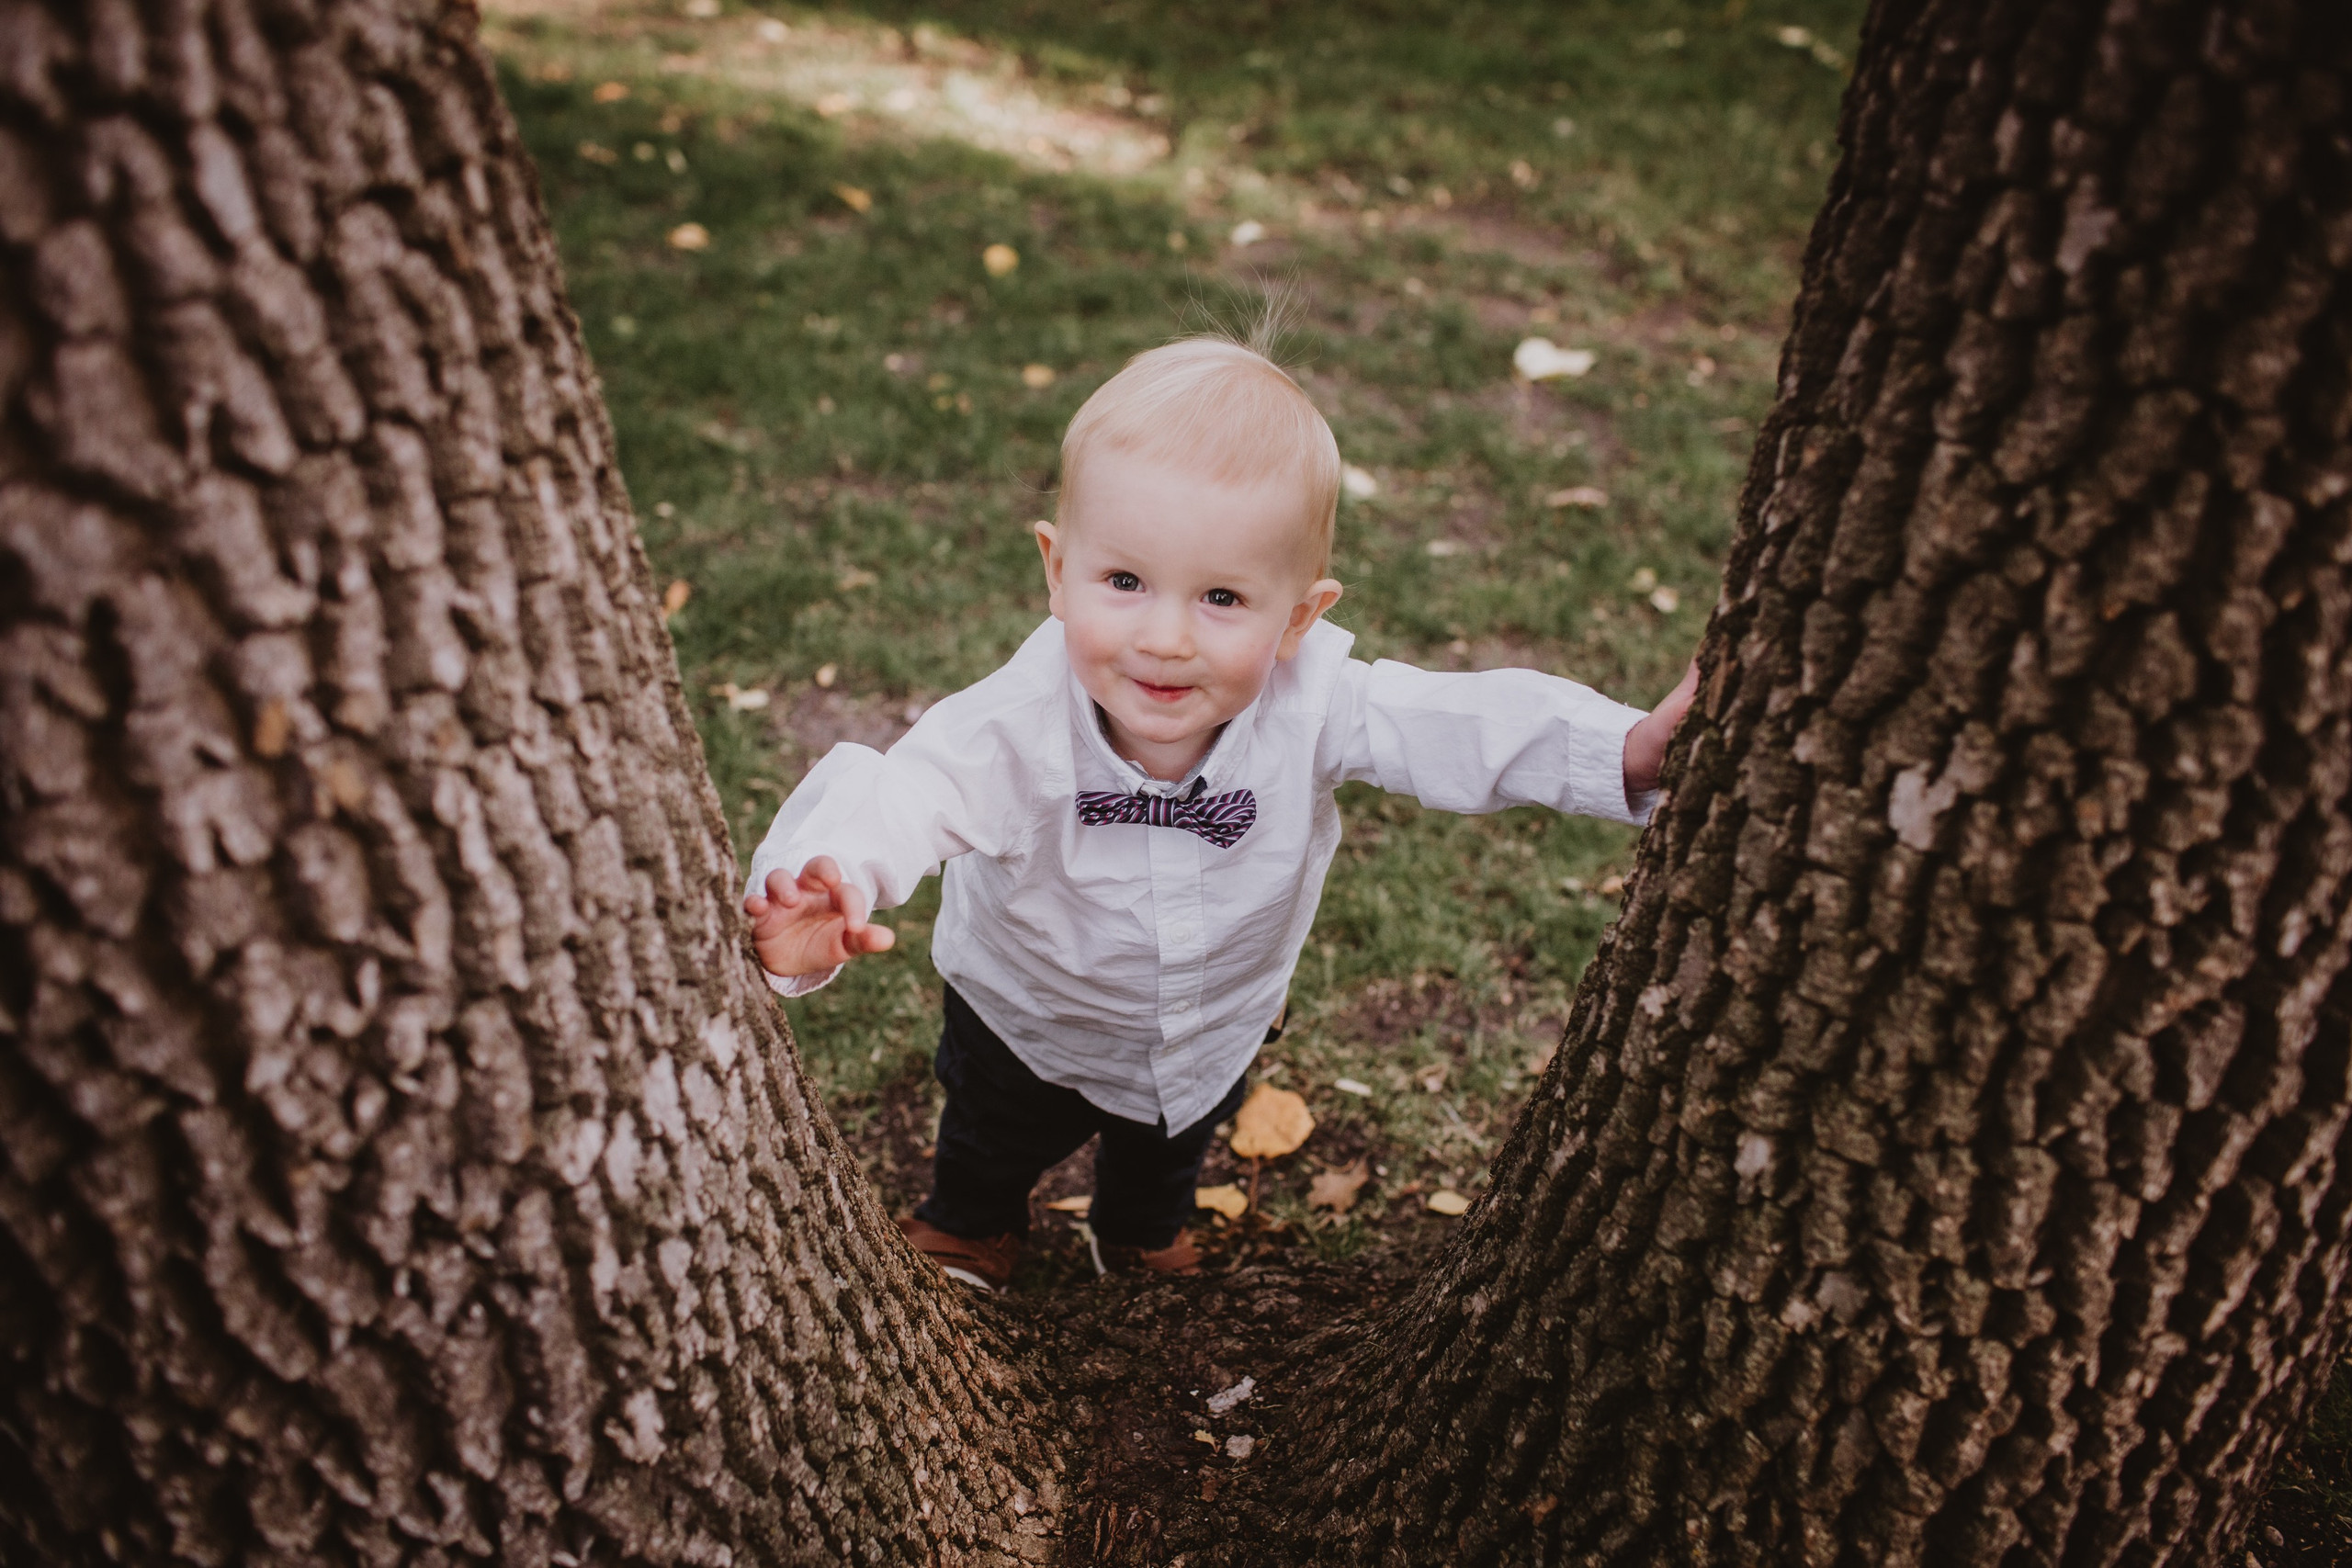 Cute Ringbearer Plays in Park after wedding ceremony.